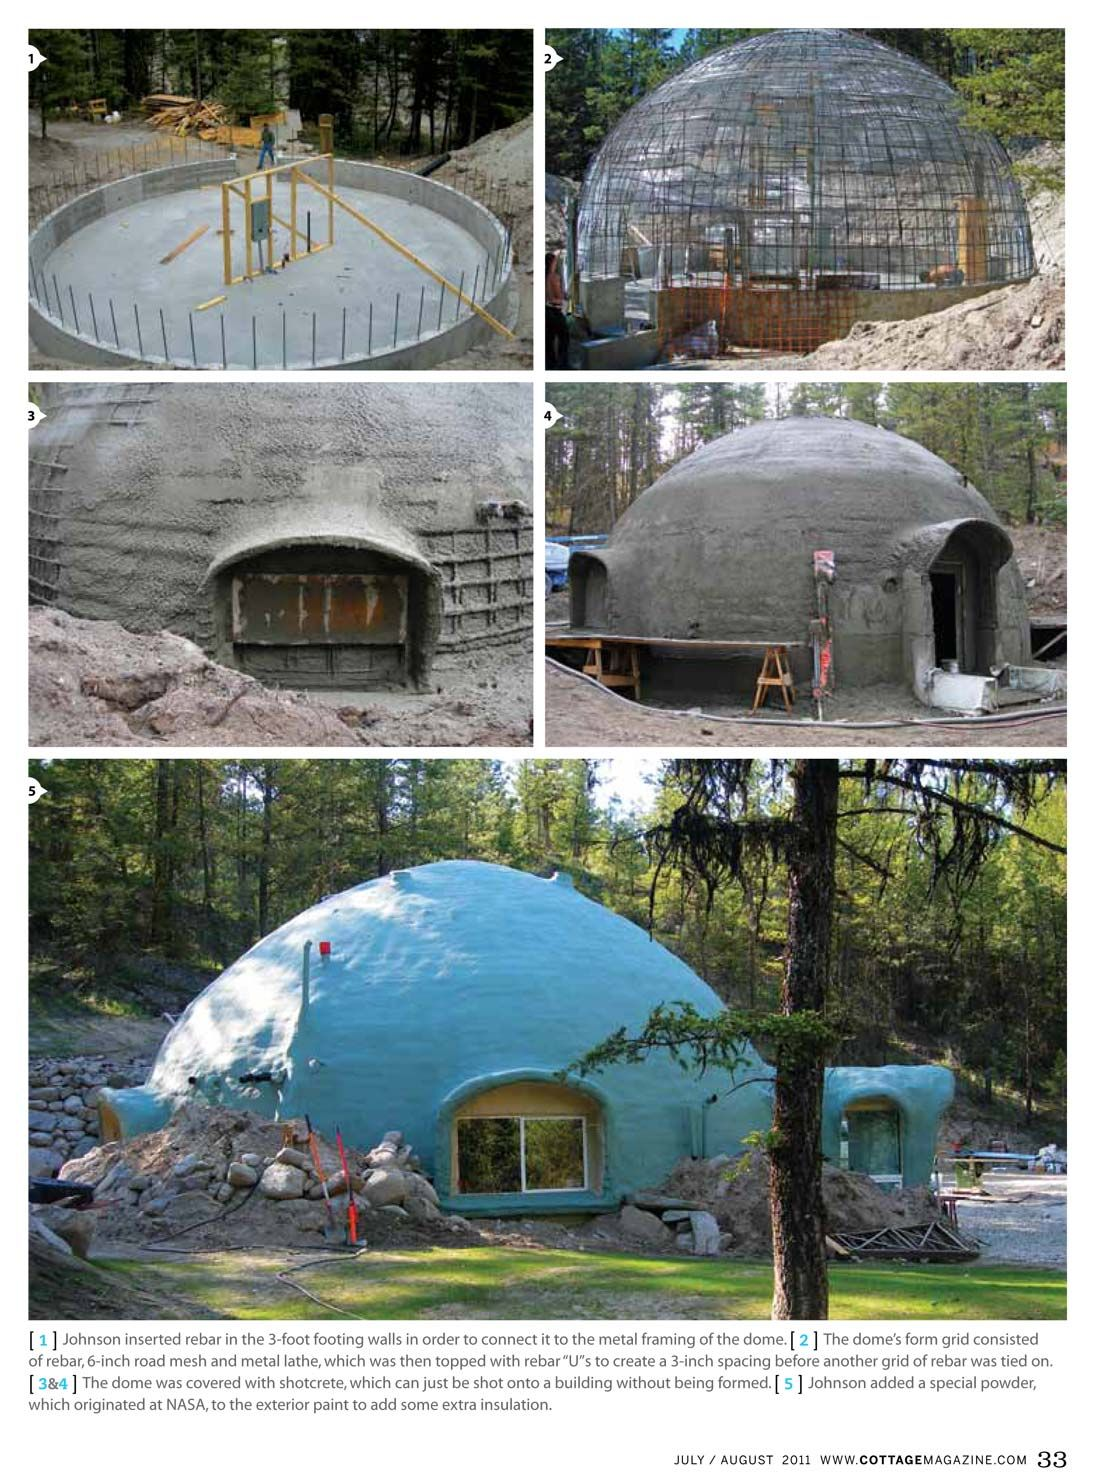 Pin By Mary Poblocki-Allen On Dome Living Off The Grid In